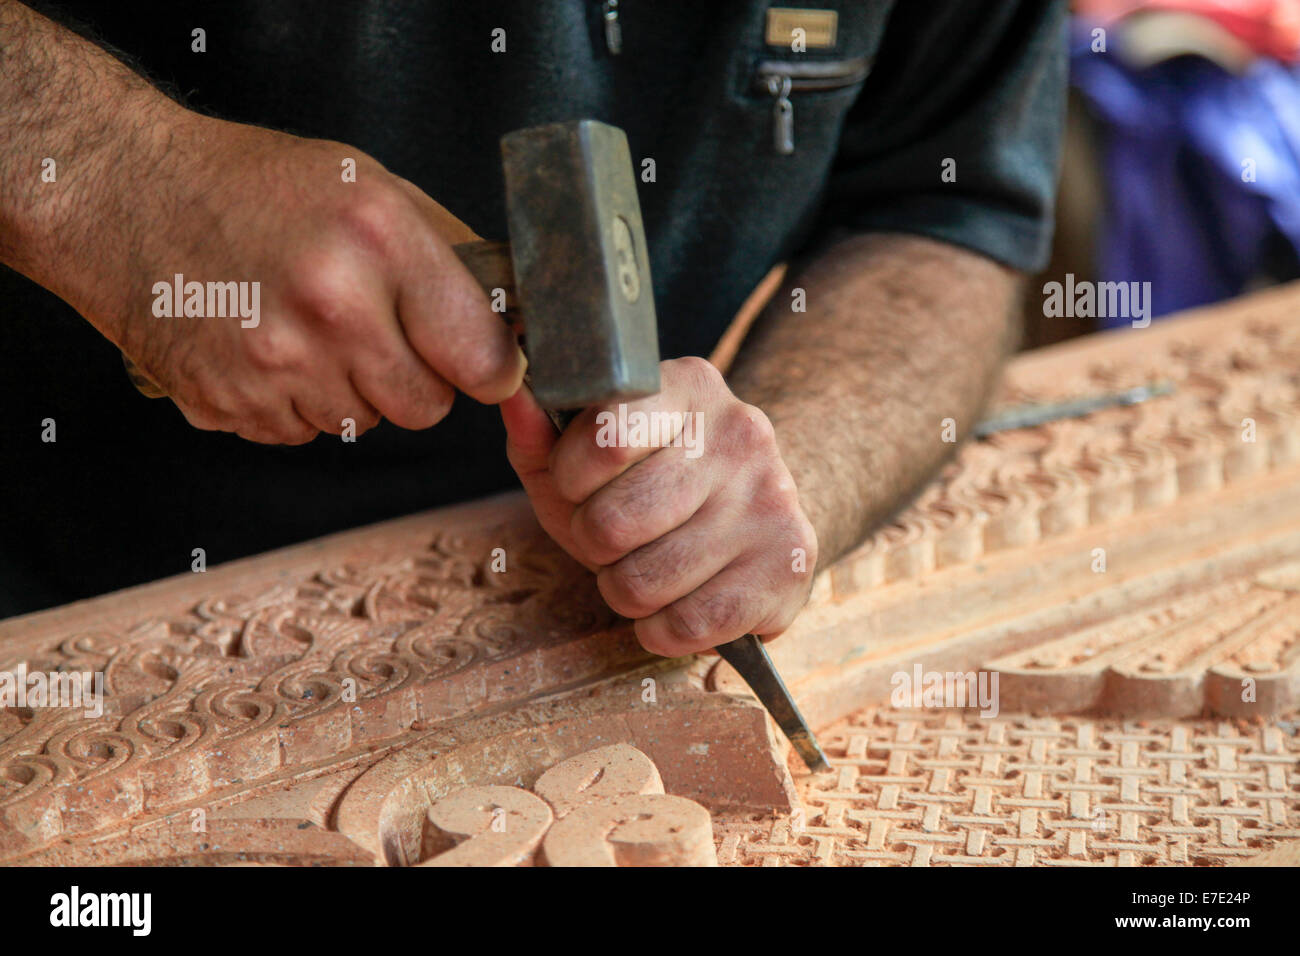 Artisan carves wood for a church. Photographed in Armenia - Stock Image